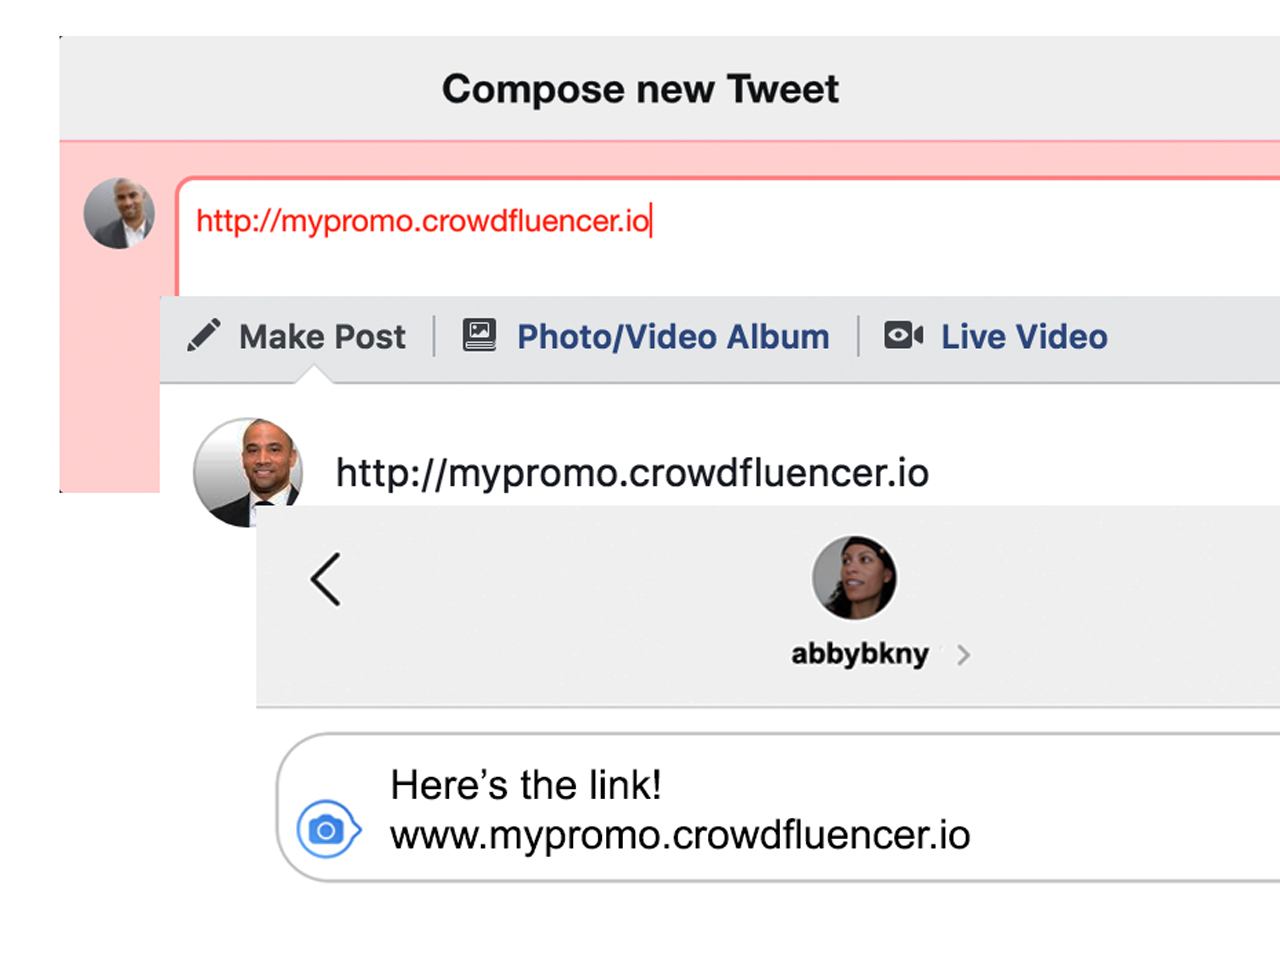 Step 2: Promote the campaign link.